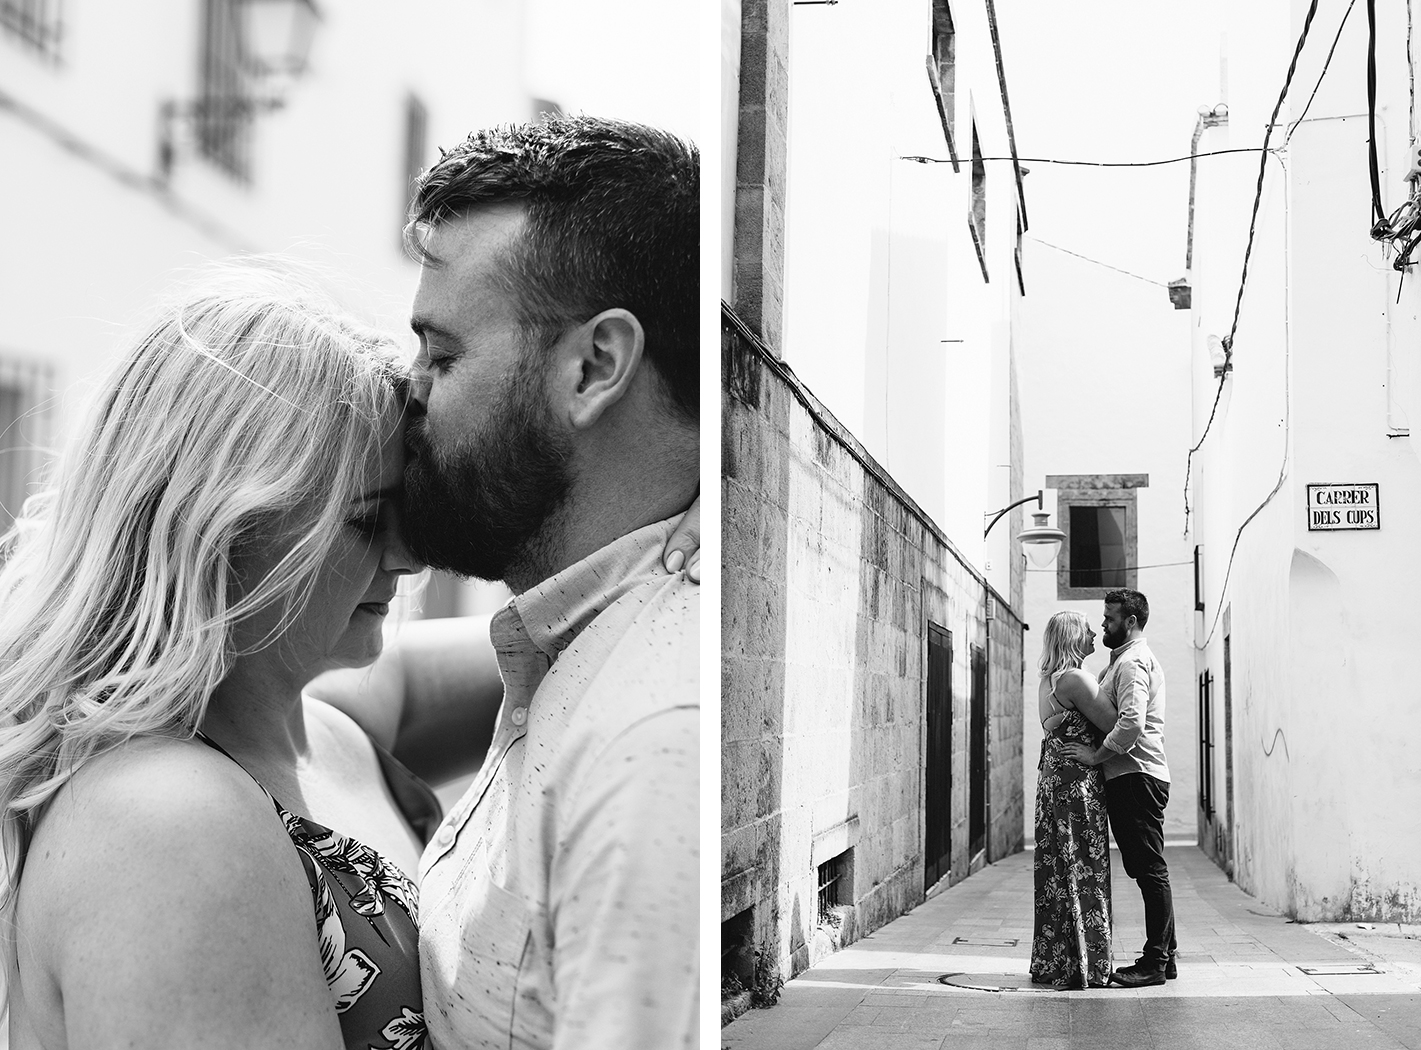 spread-7-valencia-spain-toronto-wedding-photographer-ryanne-hollies-photography--intimate-candid-real-moment-between-couple-romantic-engagement-session-inspiration-alley-alleyway-using-light-epic-cool-trendy-details-floral-dress-moments-3.jpg